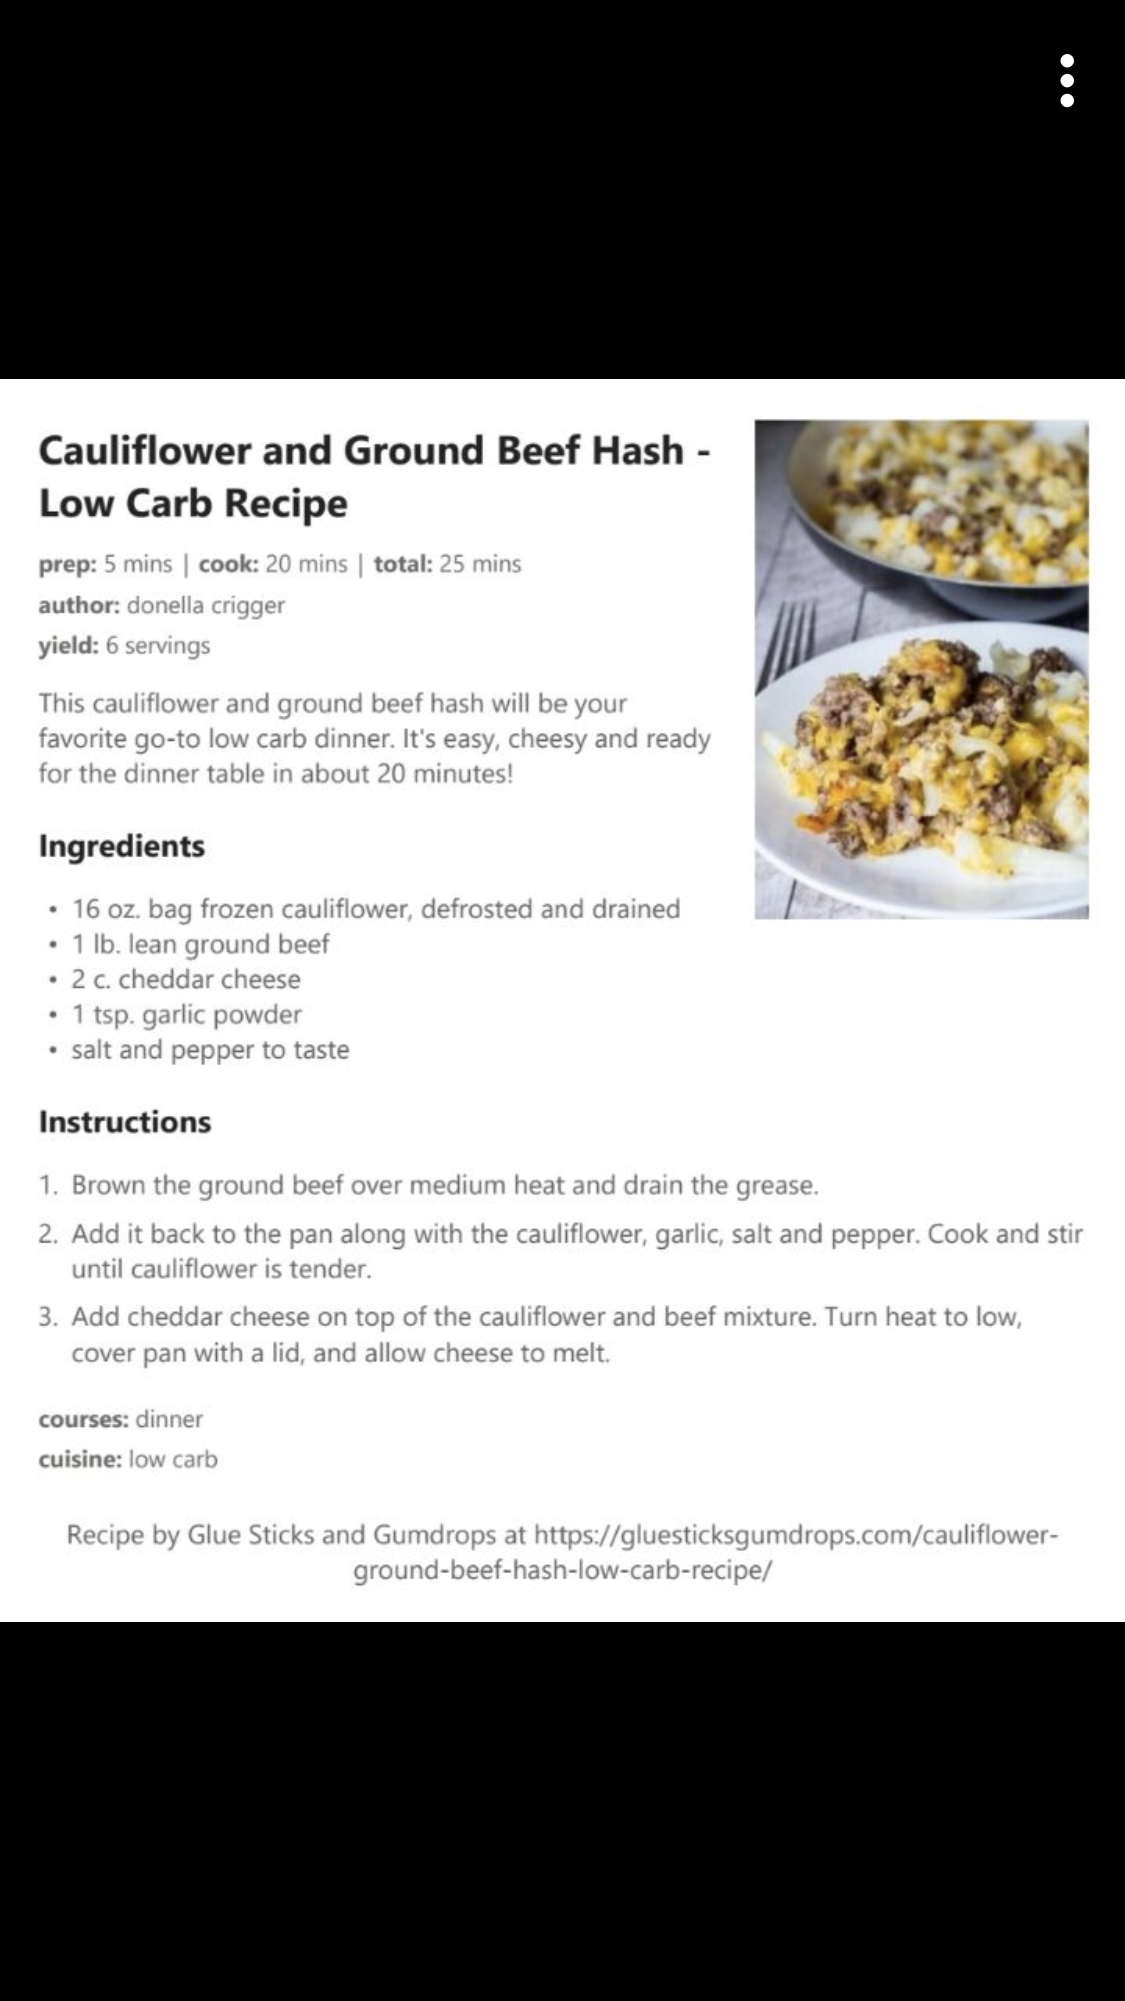 Pin By Jane Livingston On Food In 2020 Low Carb Dinner Low Carb Recipes Food